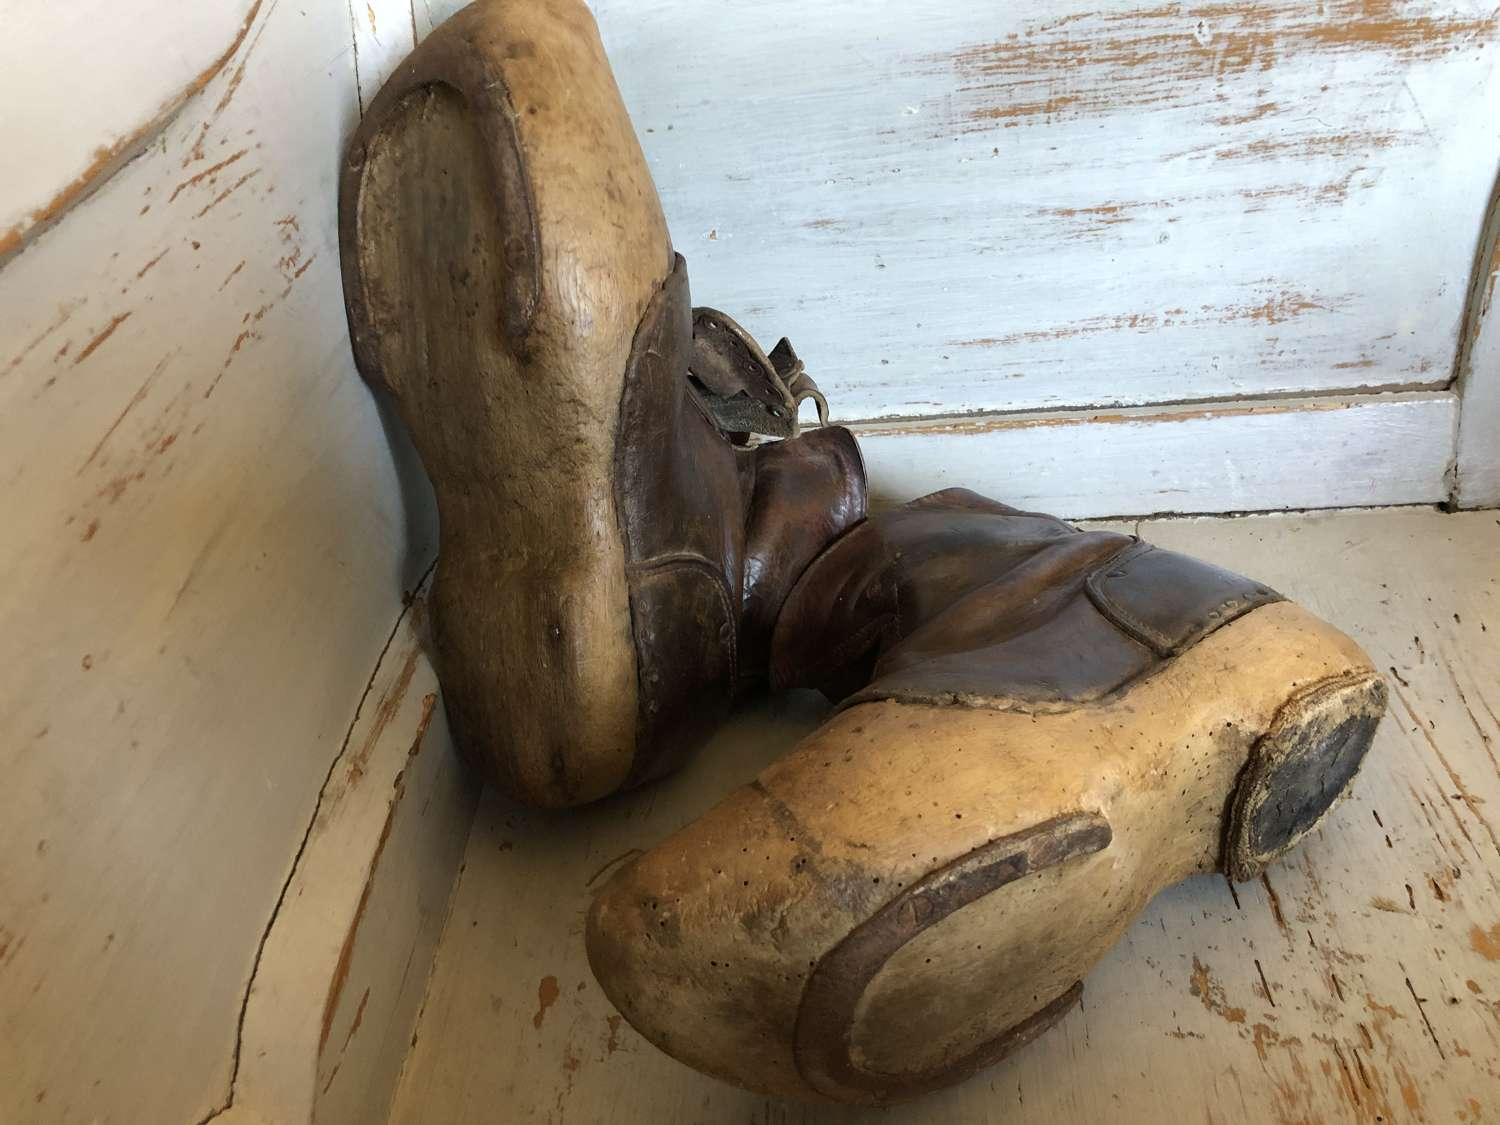 Antique Farm Worker's Boots